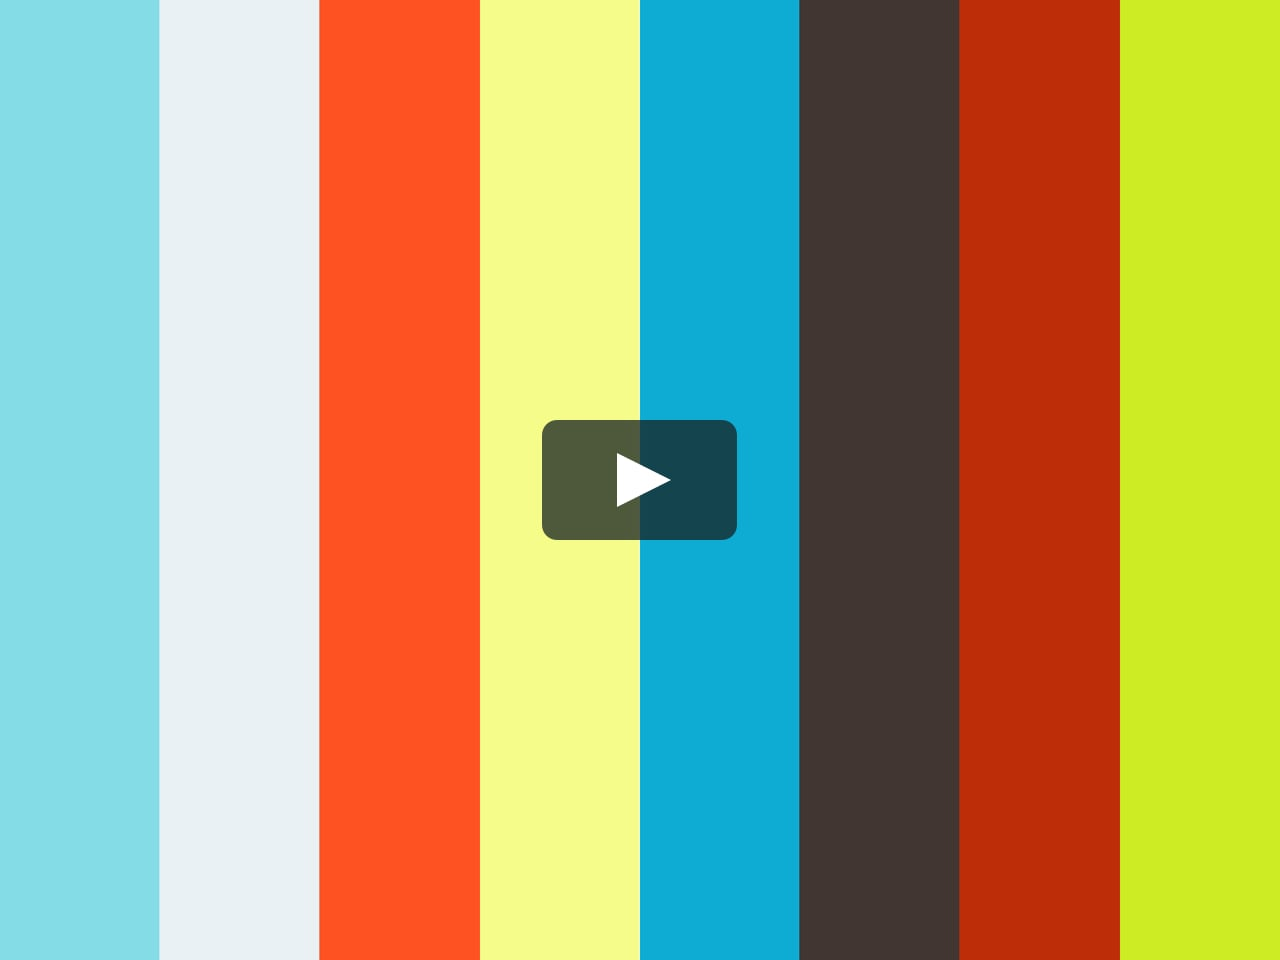 The Largest Cactus in the World